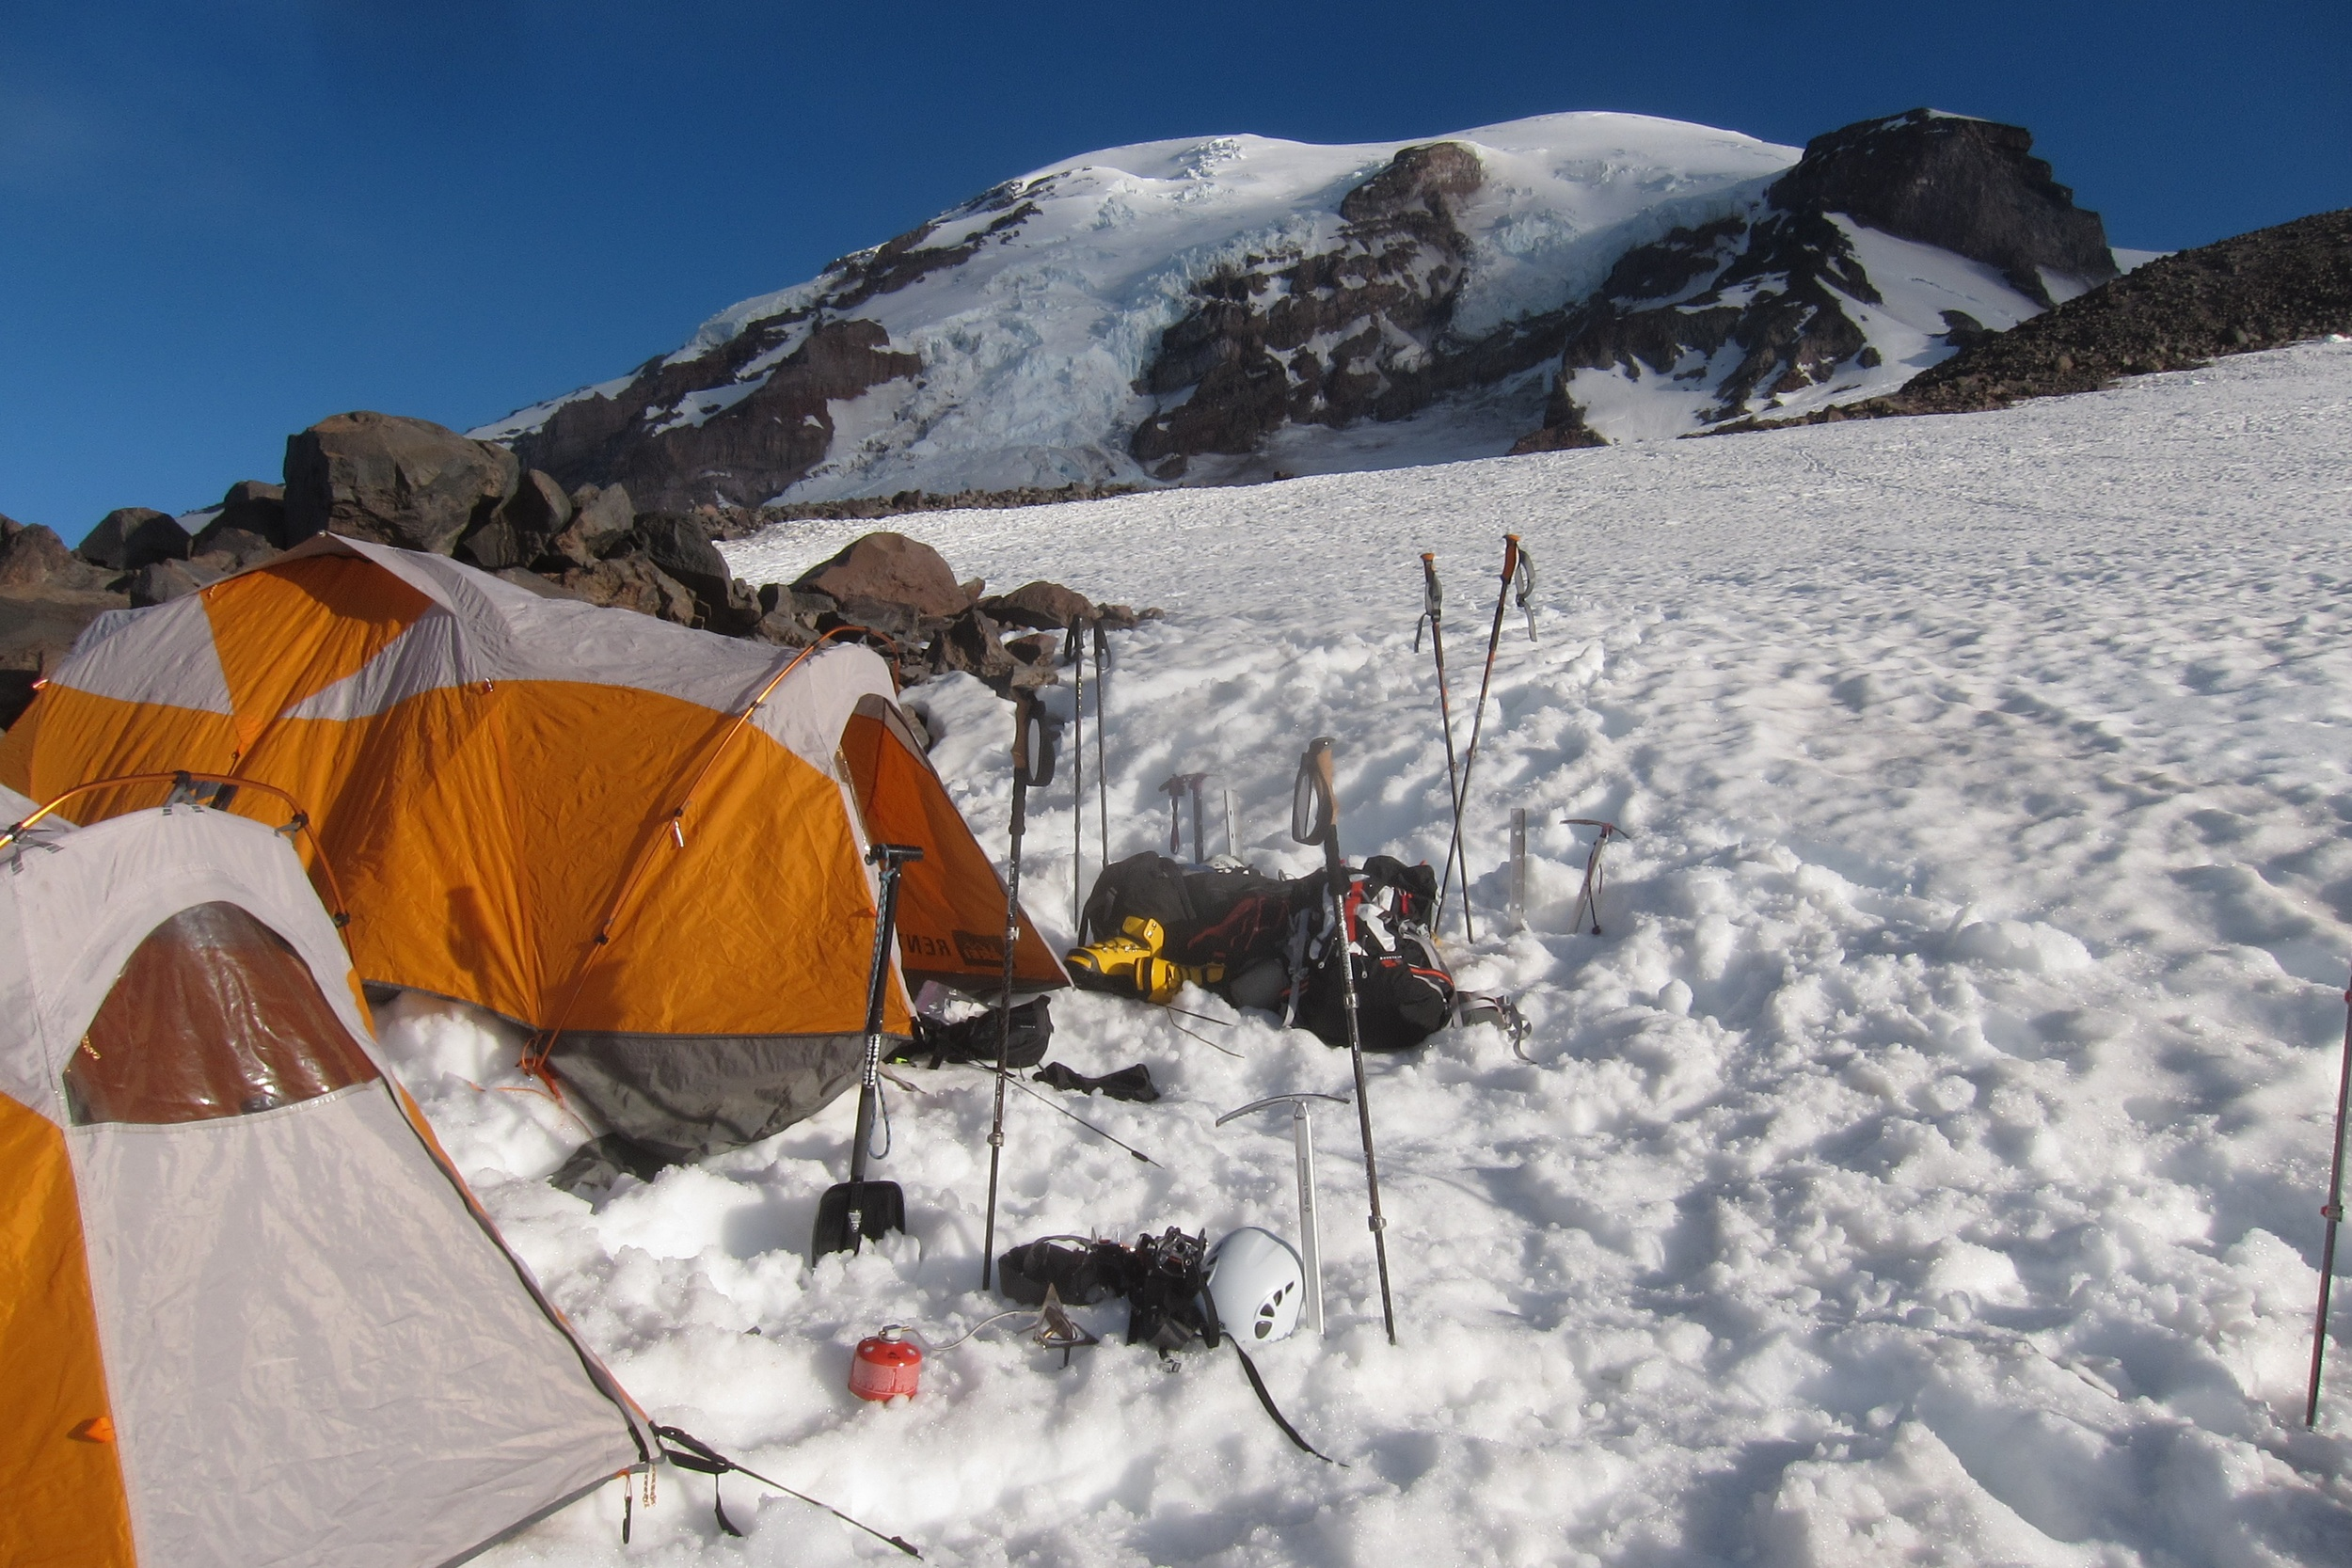 The First night on Muir snowfield